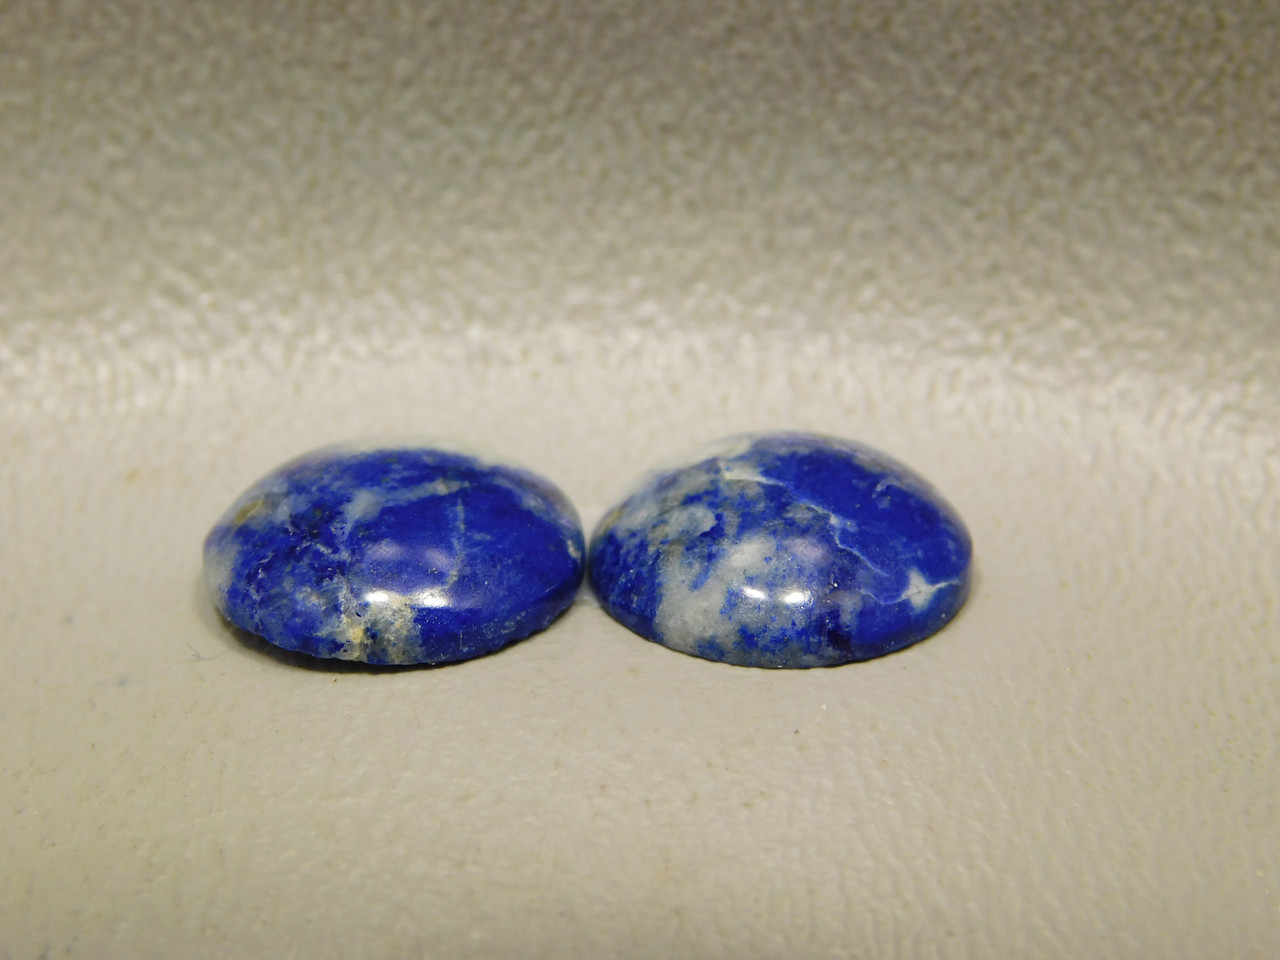 Cabochons Blue Stone Lapis Small 13 mm Round Matched Pairs #20